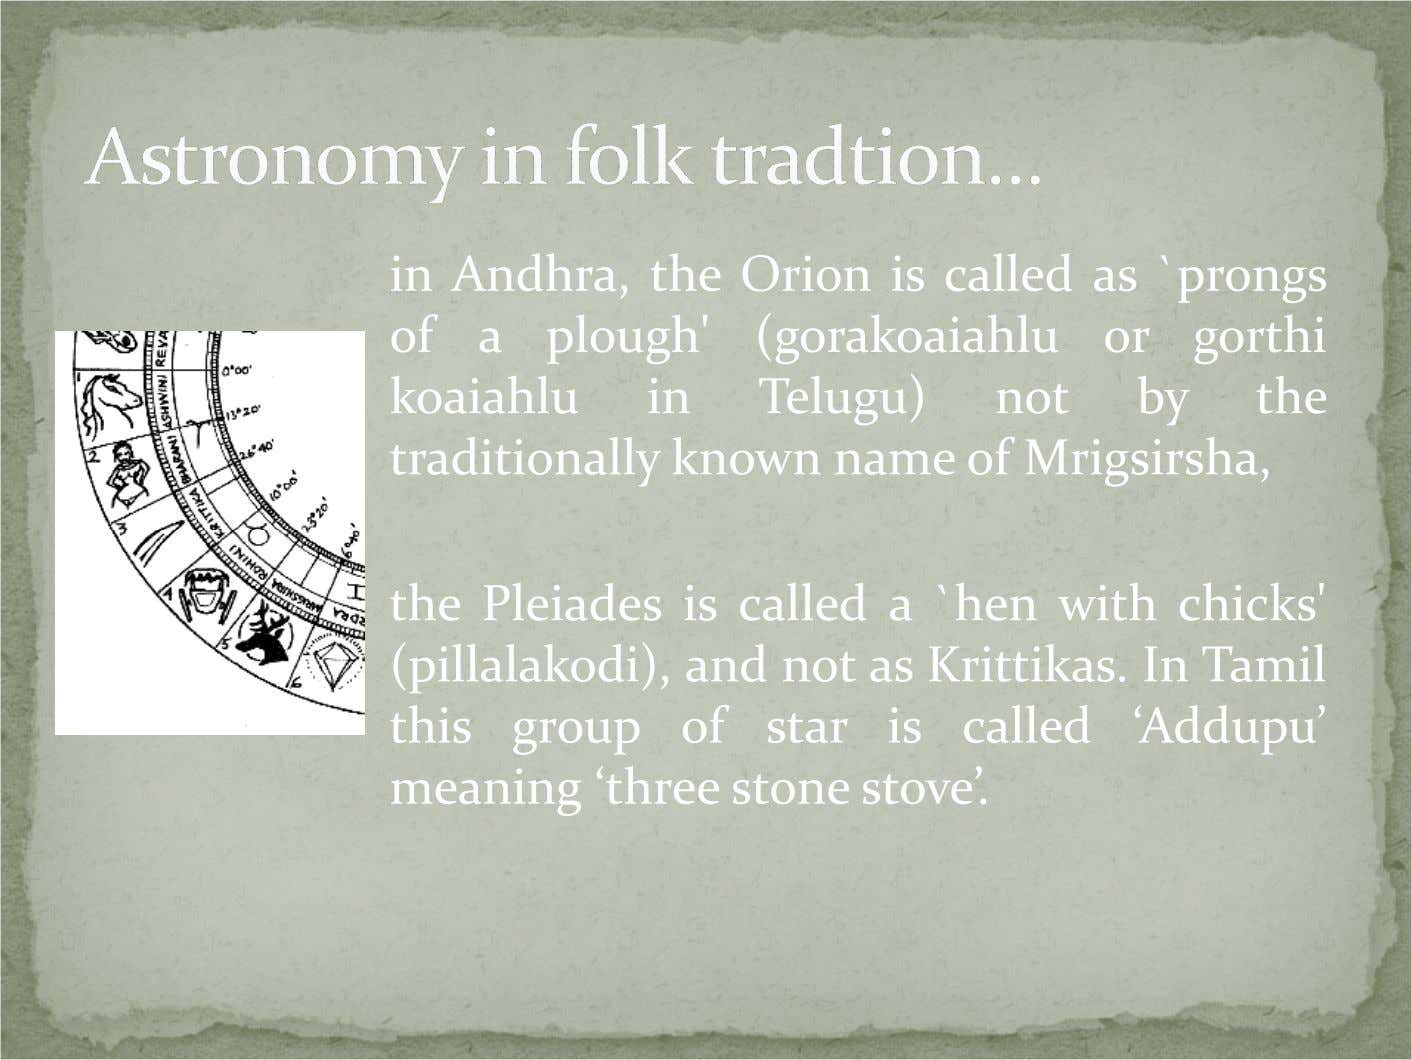 in Andhra, the Orion is called as `prongs of a plough' (gorakoaiahlu or gorthi koaiahlu